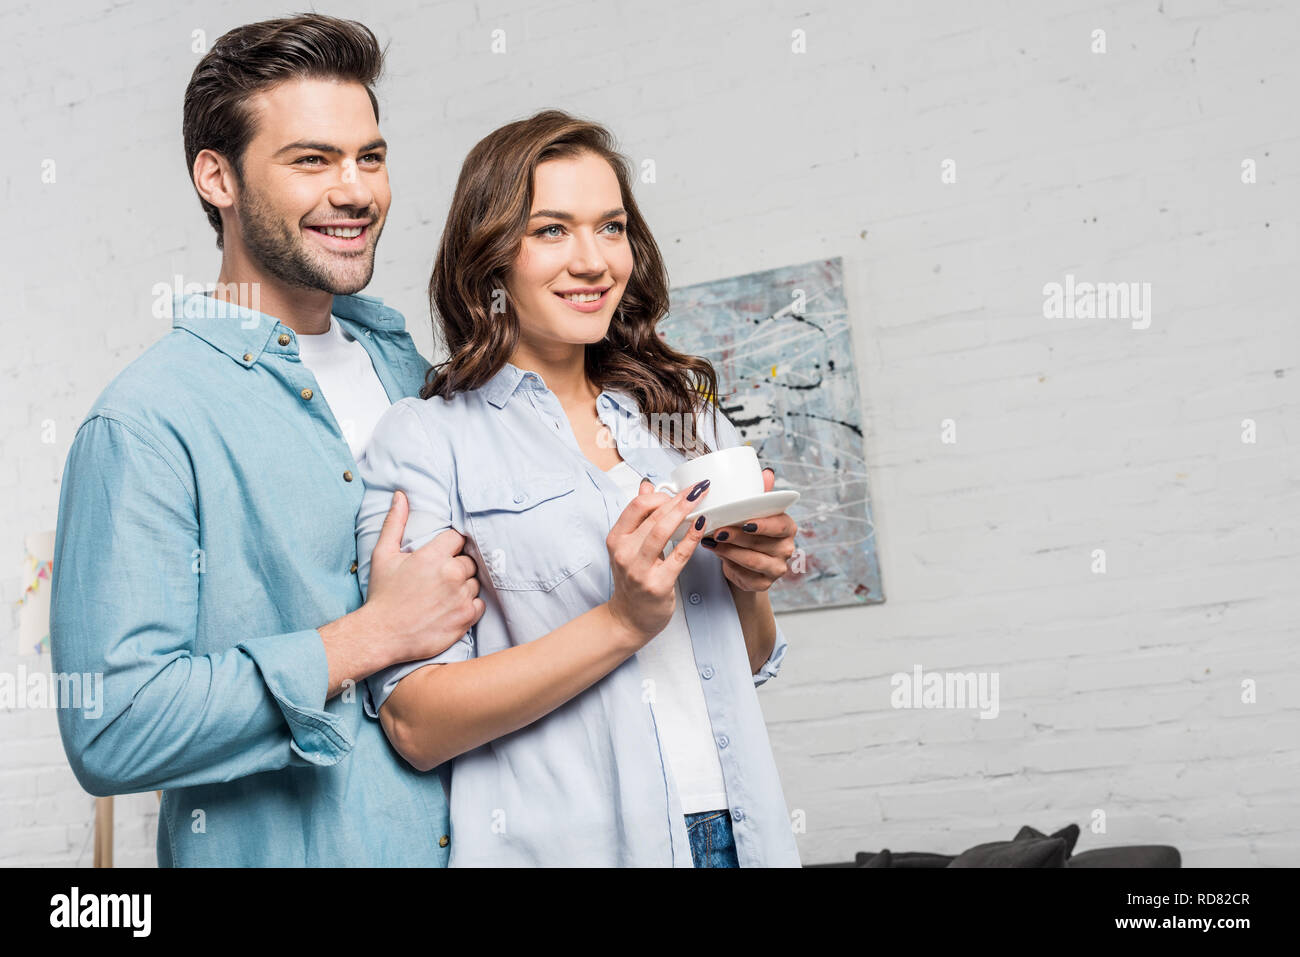 smiling man tenderly embracing beautiful woman holding cup of coffee at home - Stock Image